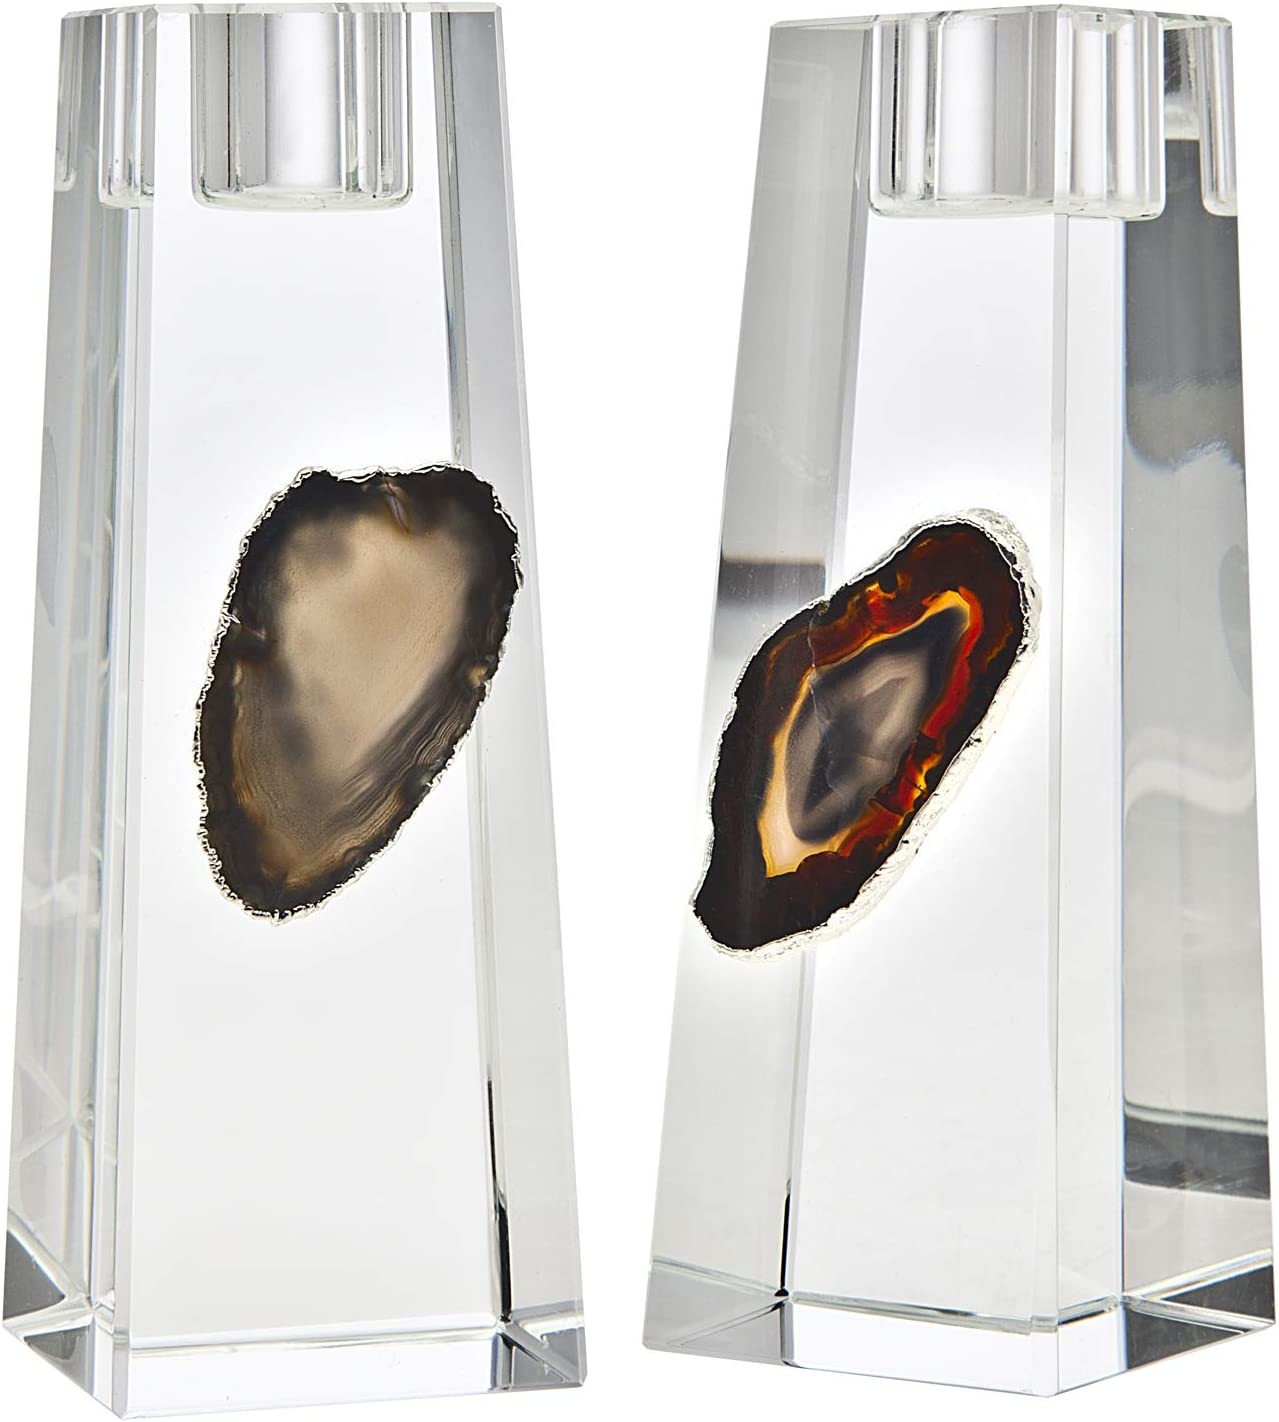 Philip Whitney Medium Black Agate and Candle Discount mail order Silver NEW before selling Holder Home